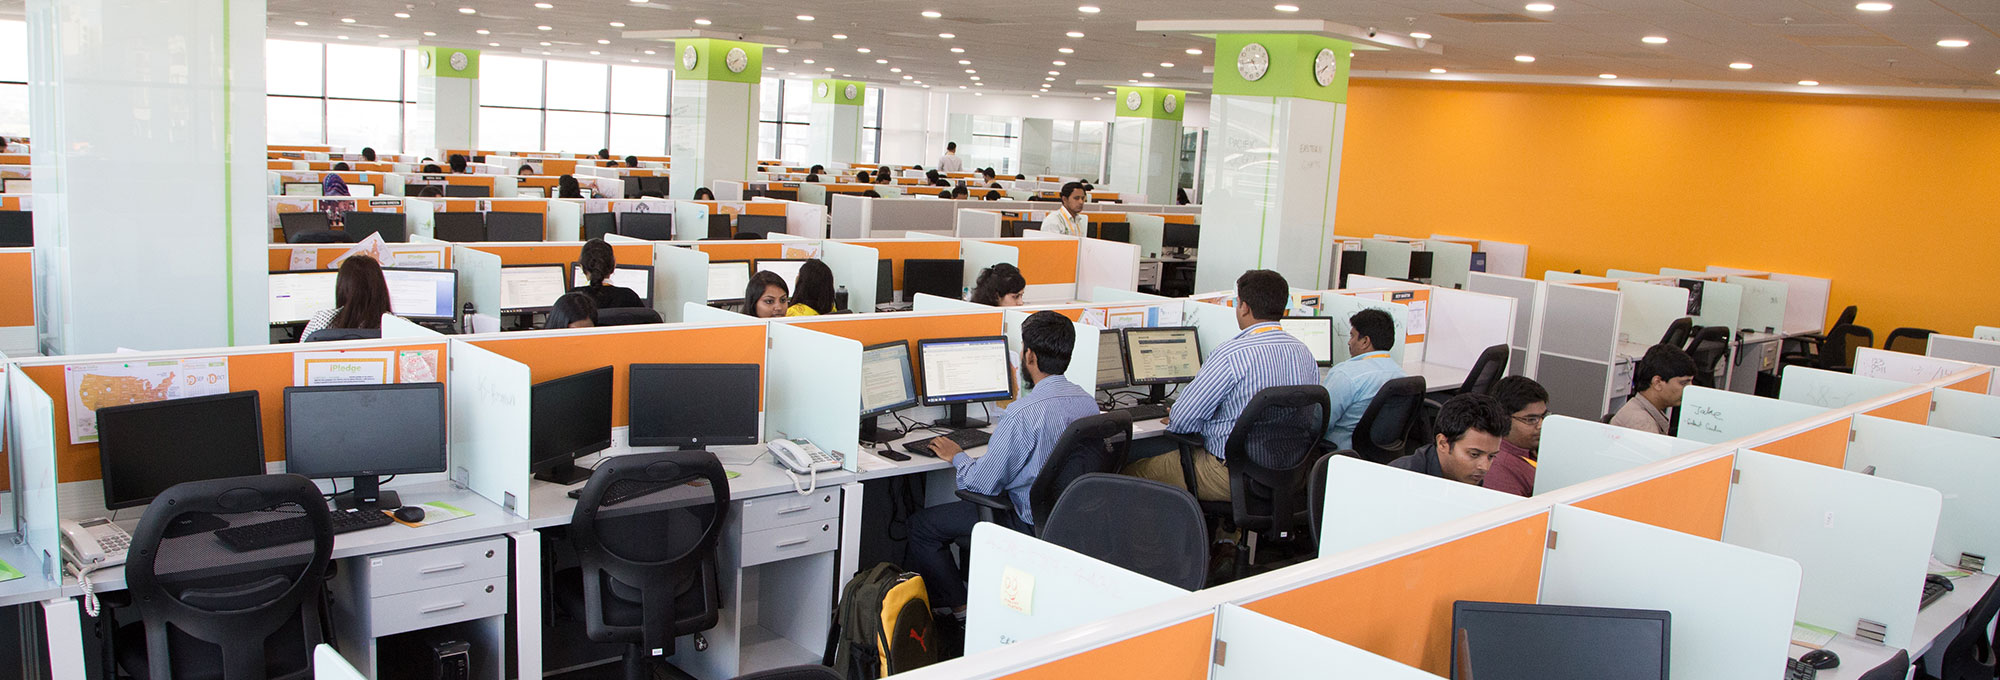 iPlace India Offices designed by Jeanne Heydecker - ibuildcompanies.com